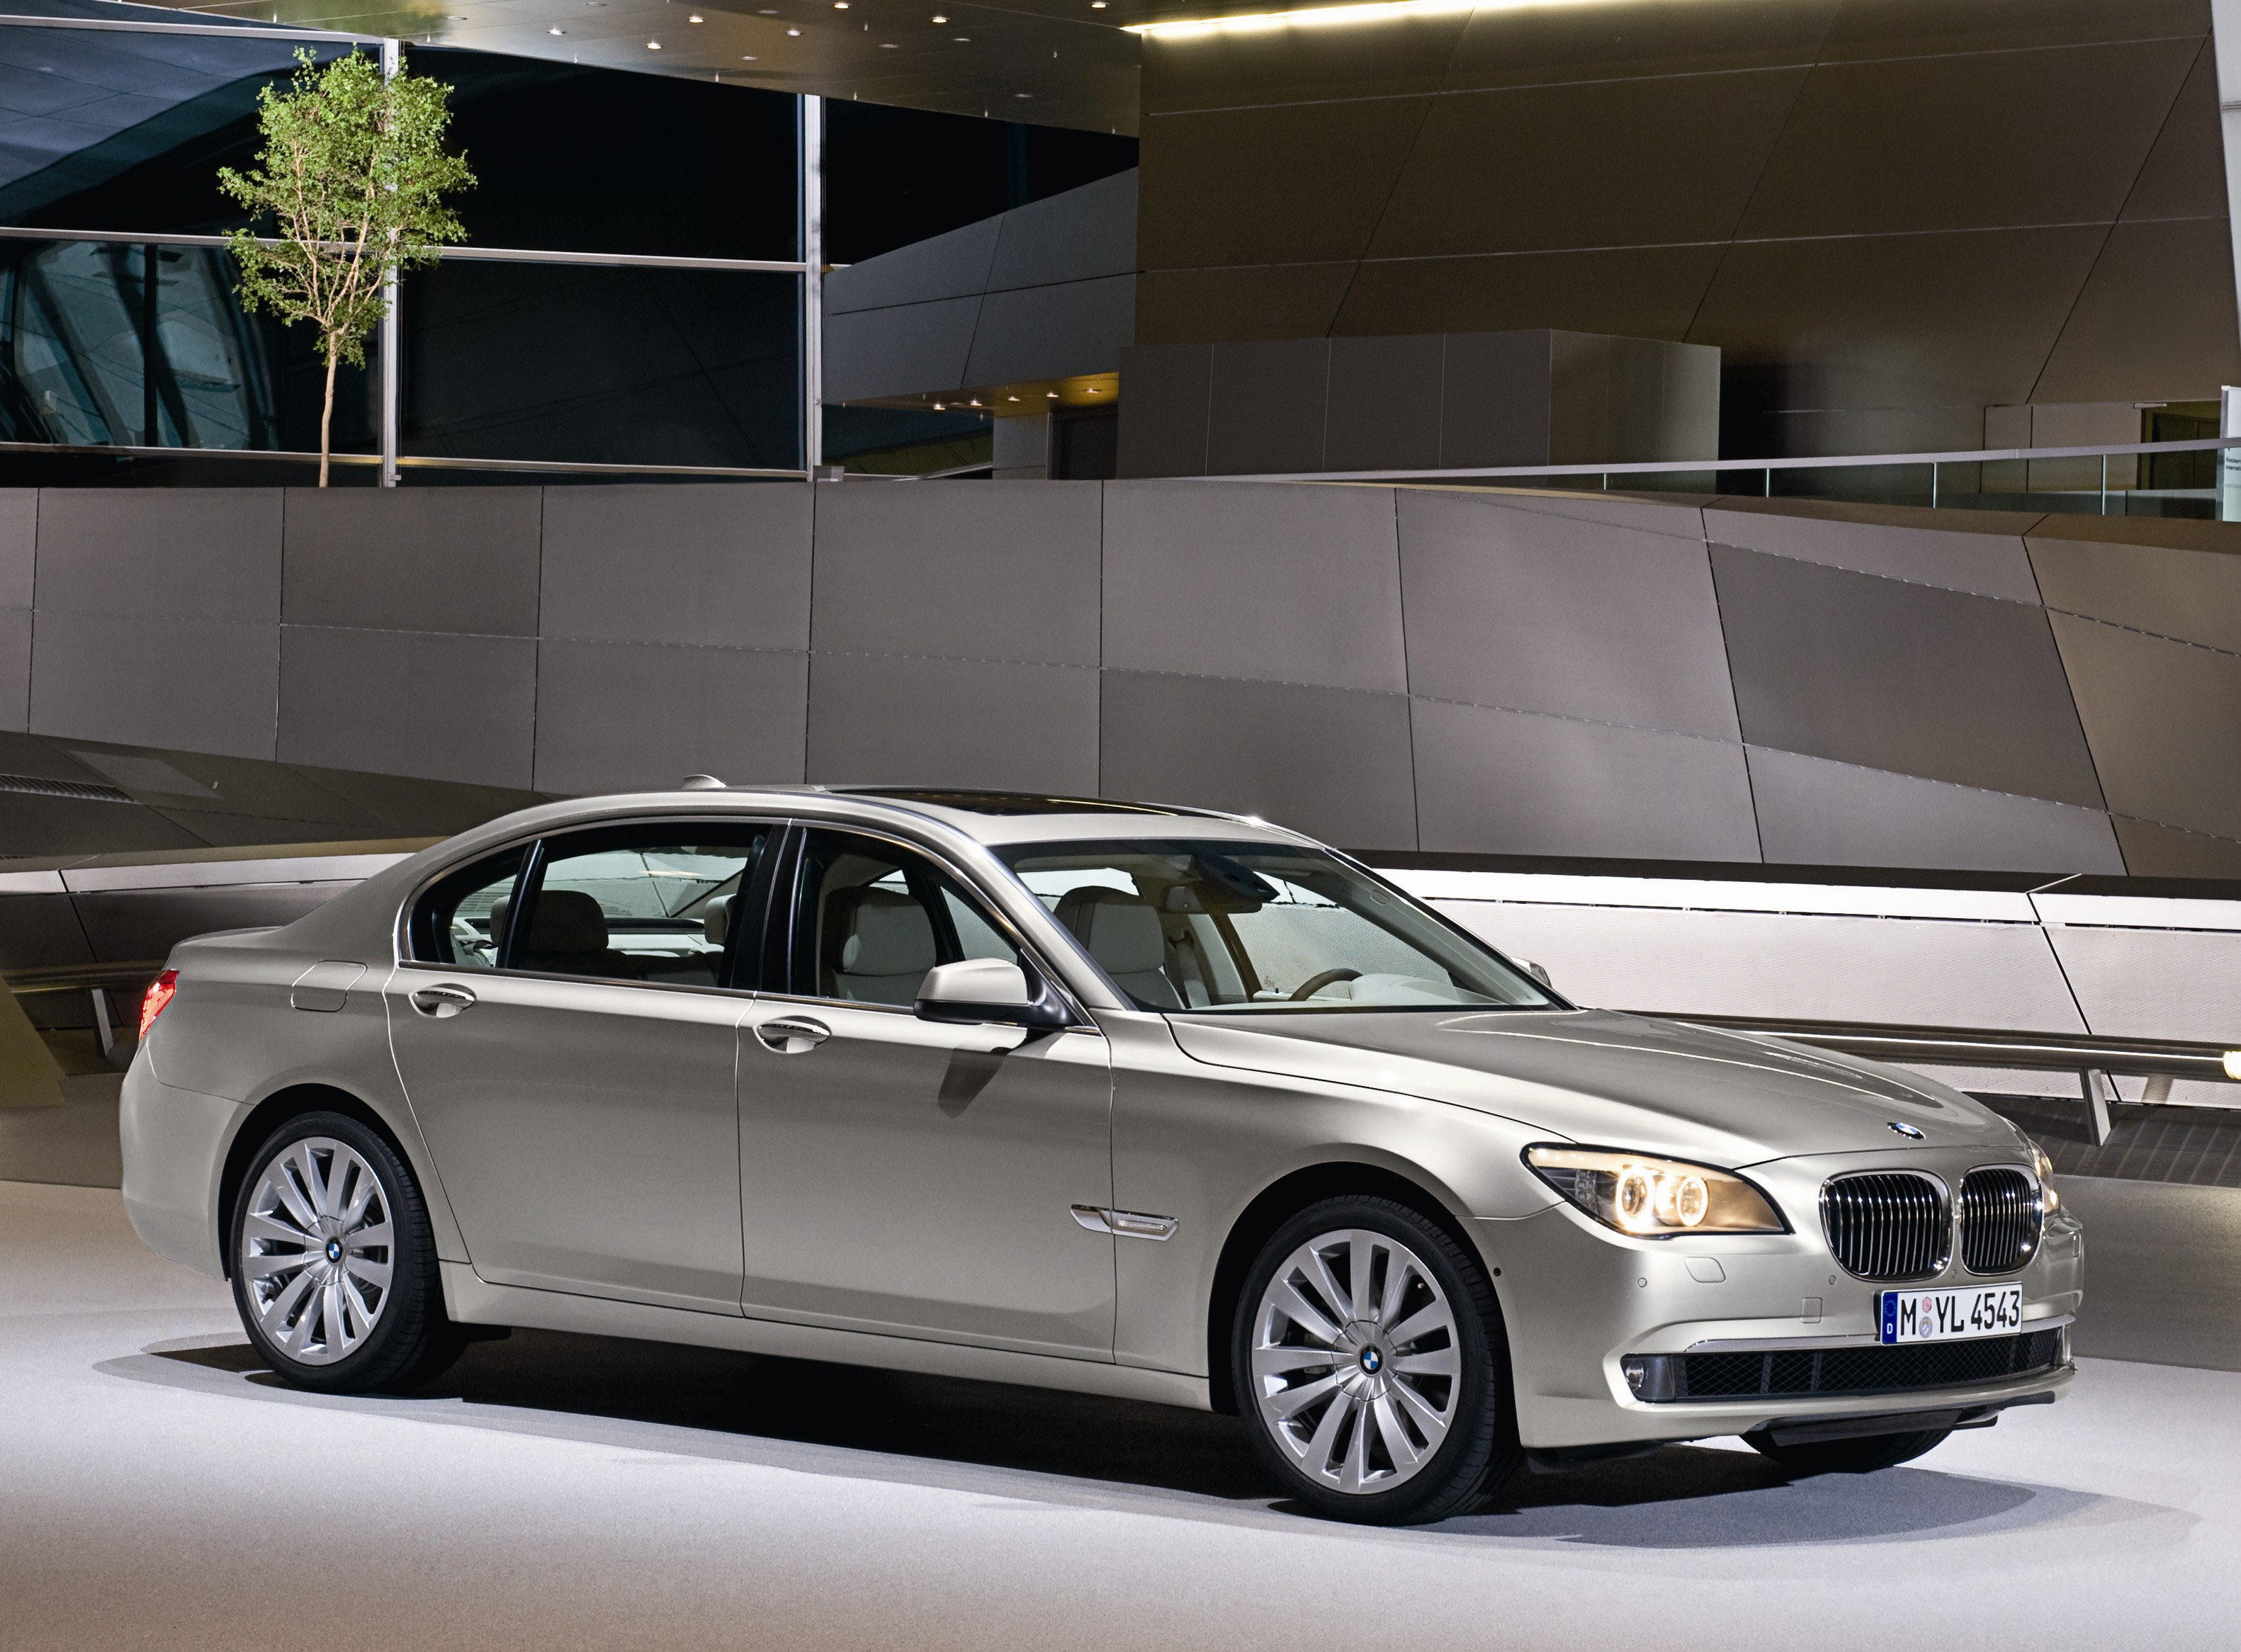 BMW 7 Series - Picture 9097